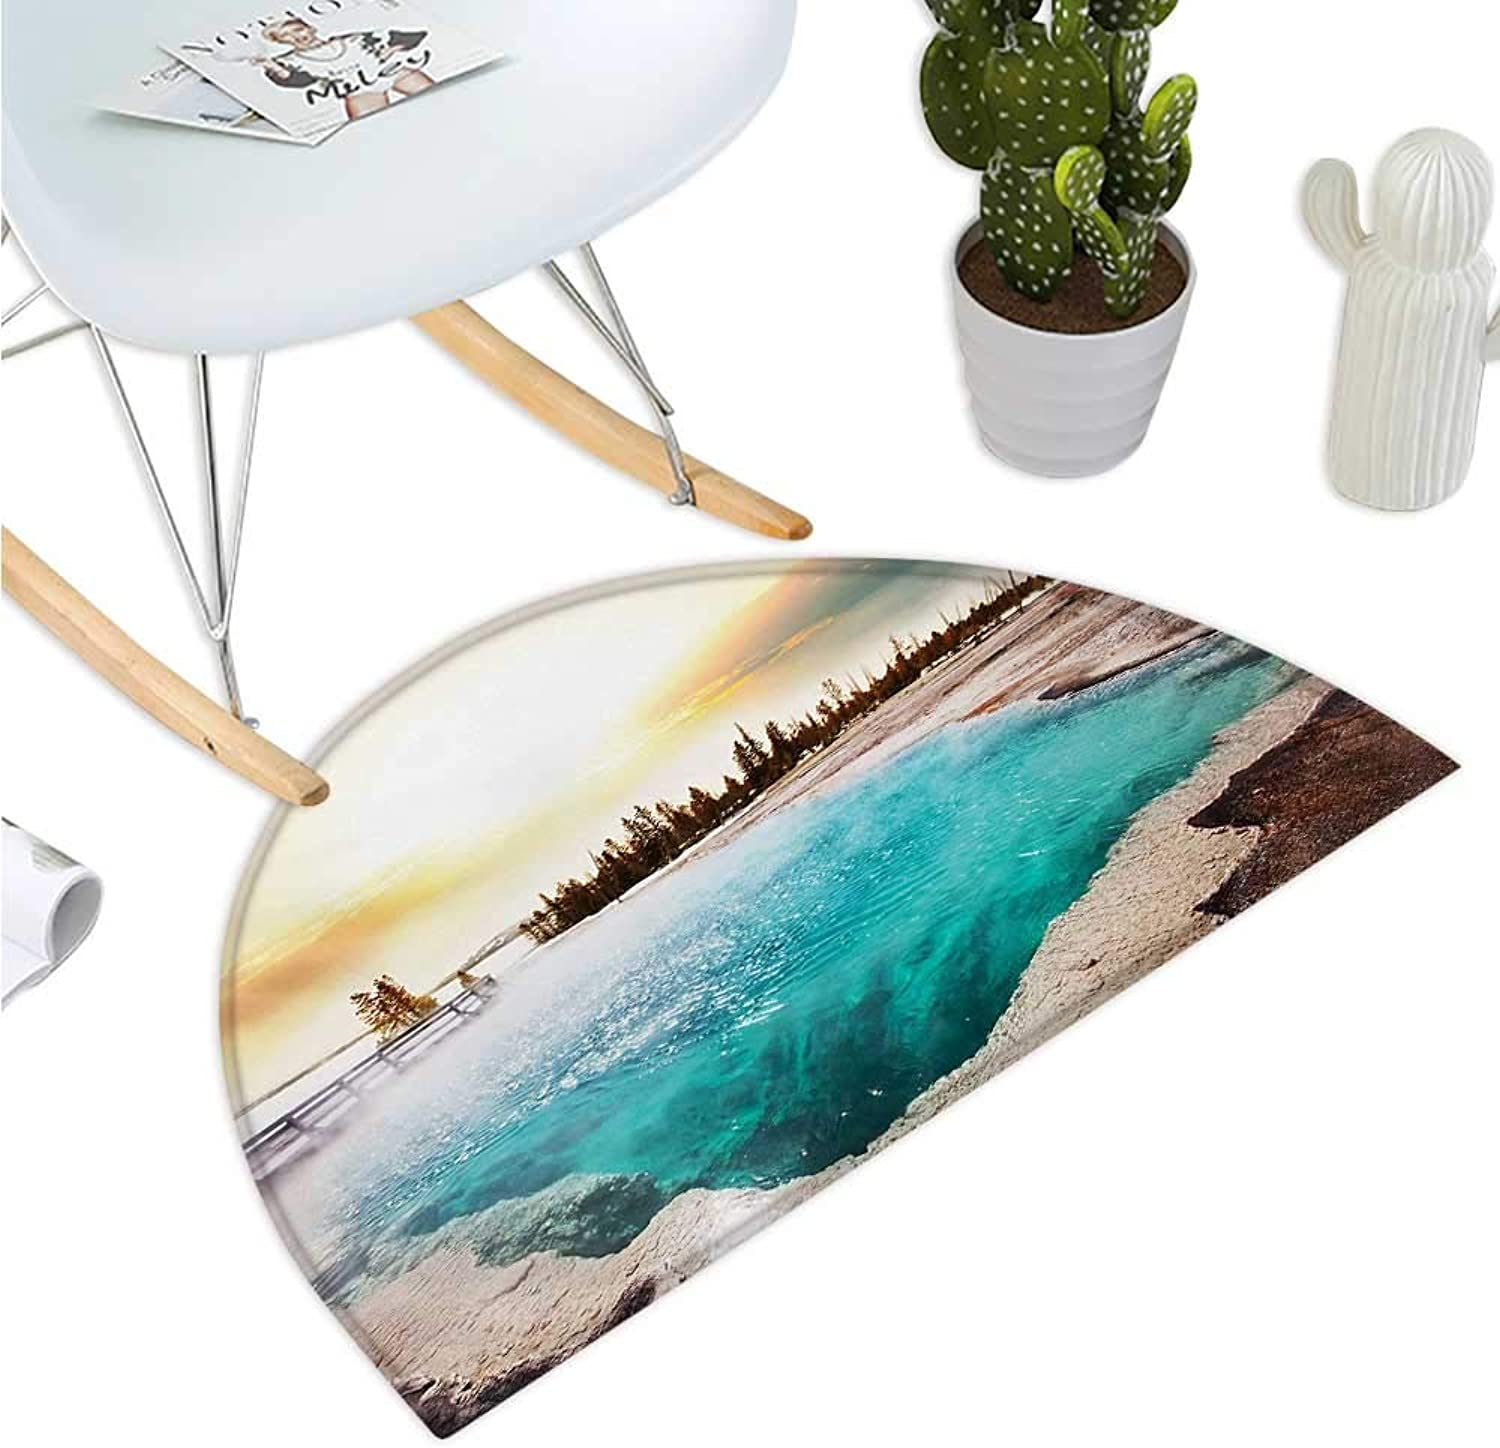 Yellowstone Semicircle Doormat Hot Springs in Yellowstone National Park Sunshine Clouds Magical Earth Nature Entry Door Mat H 43.3  xD 64.9  Turquoise